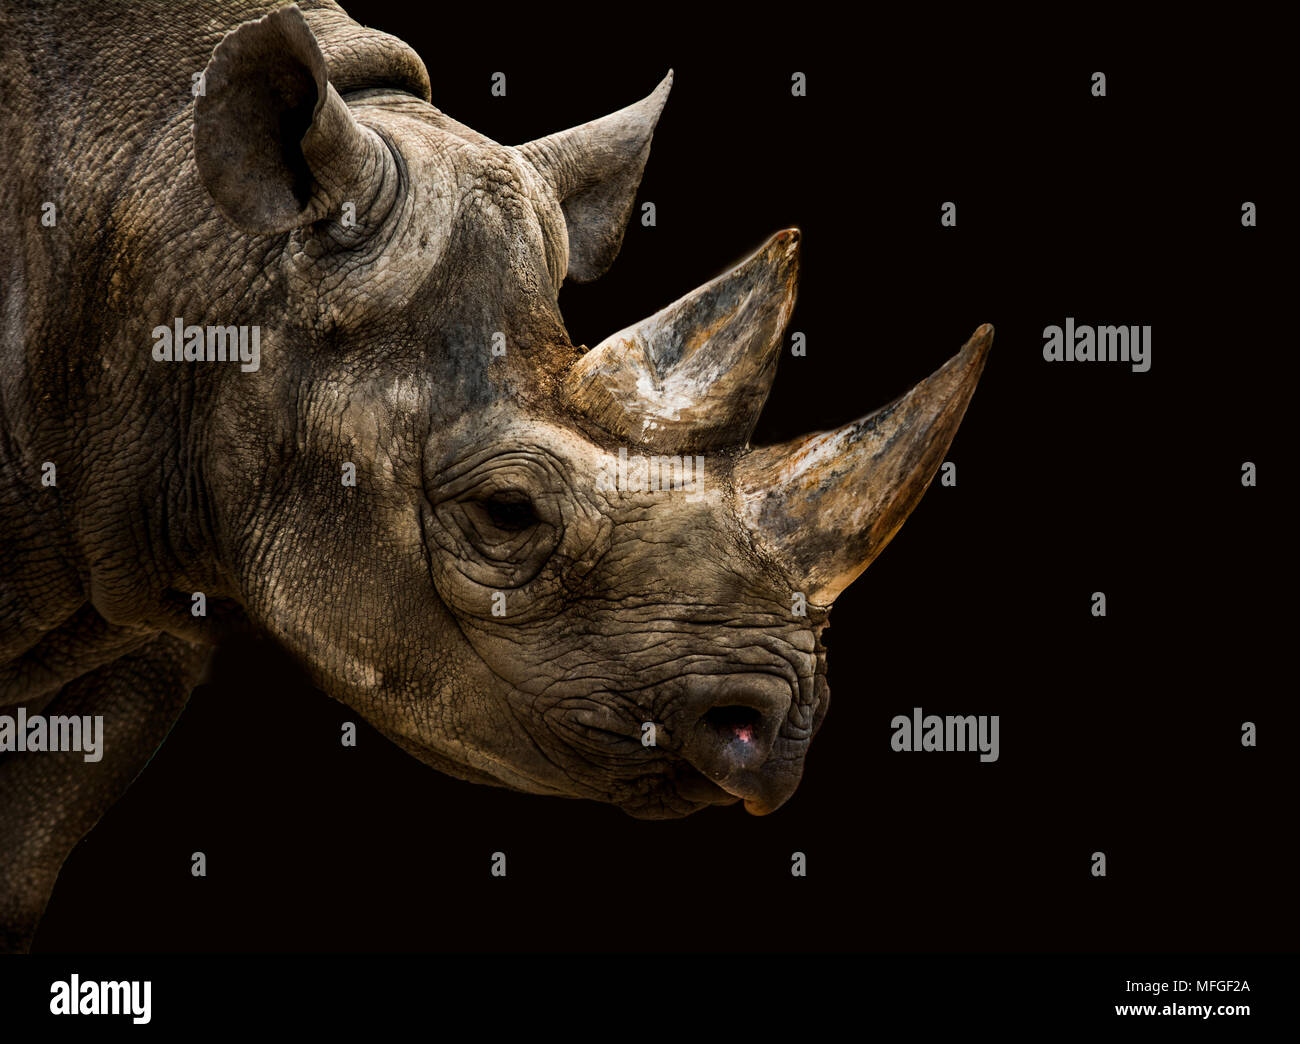 Black Rhino mit starken Features Stockbild